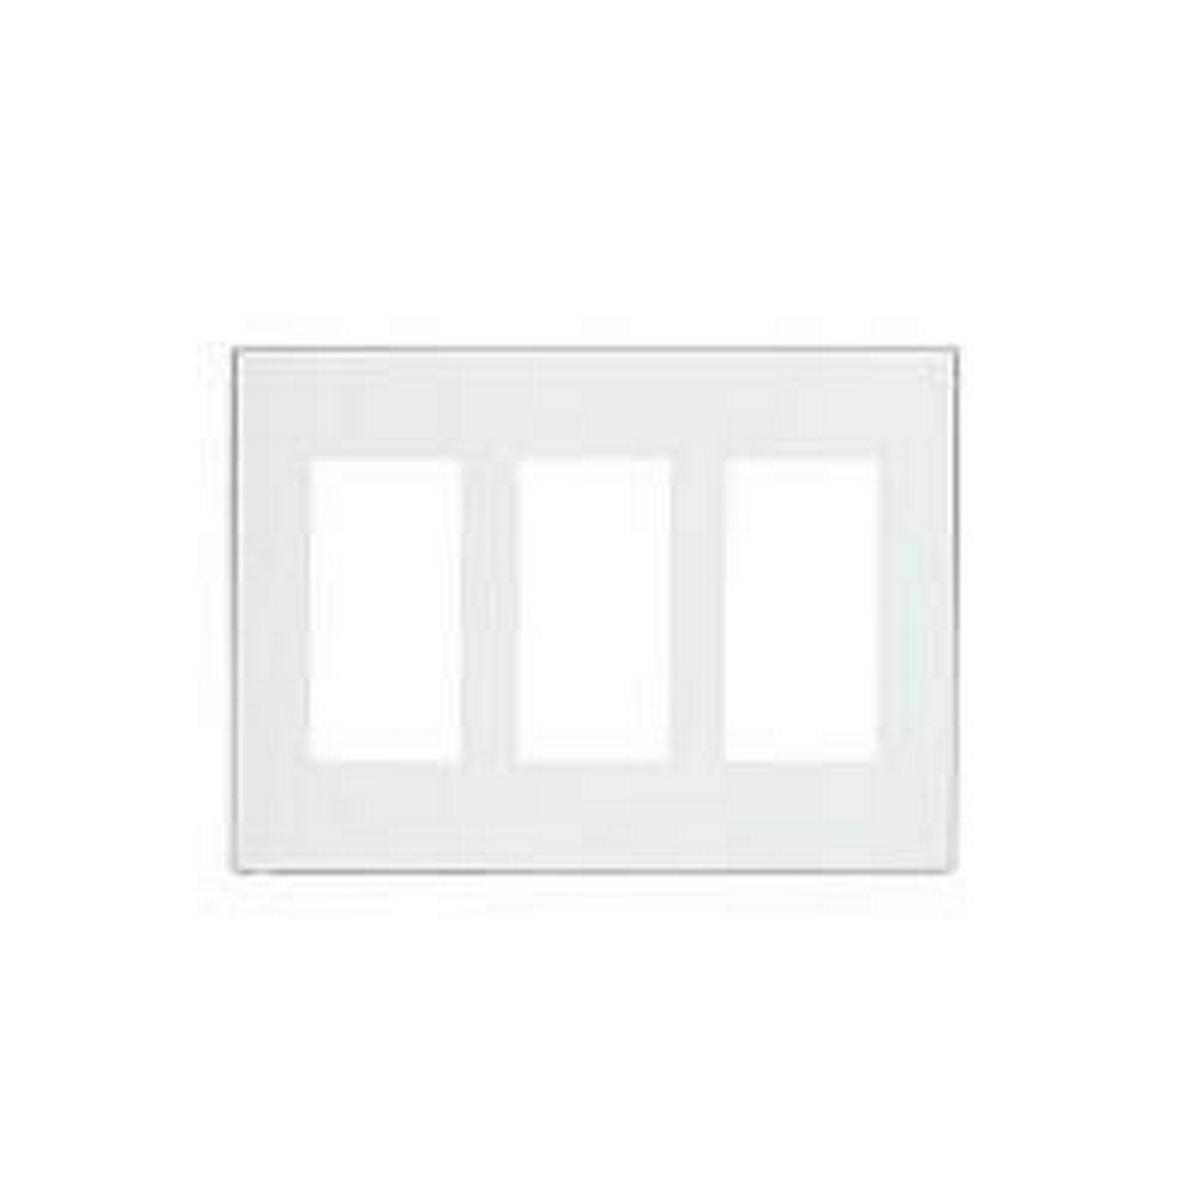 PulseWorx - Wall Switch Cover Plate, Three Gang - Screwless